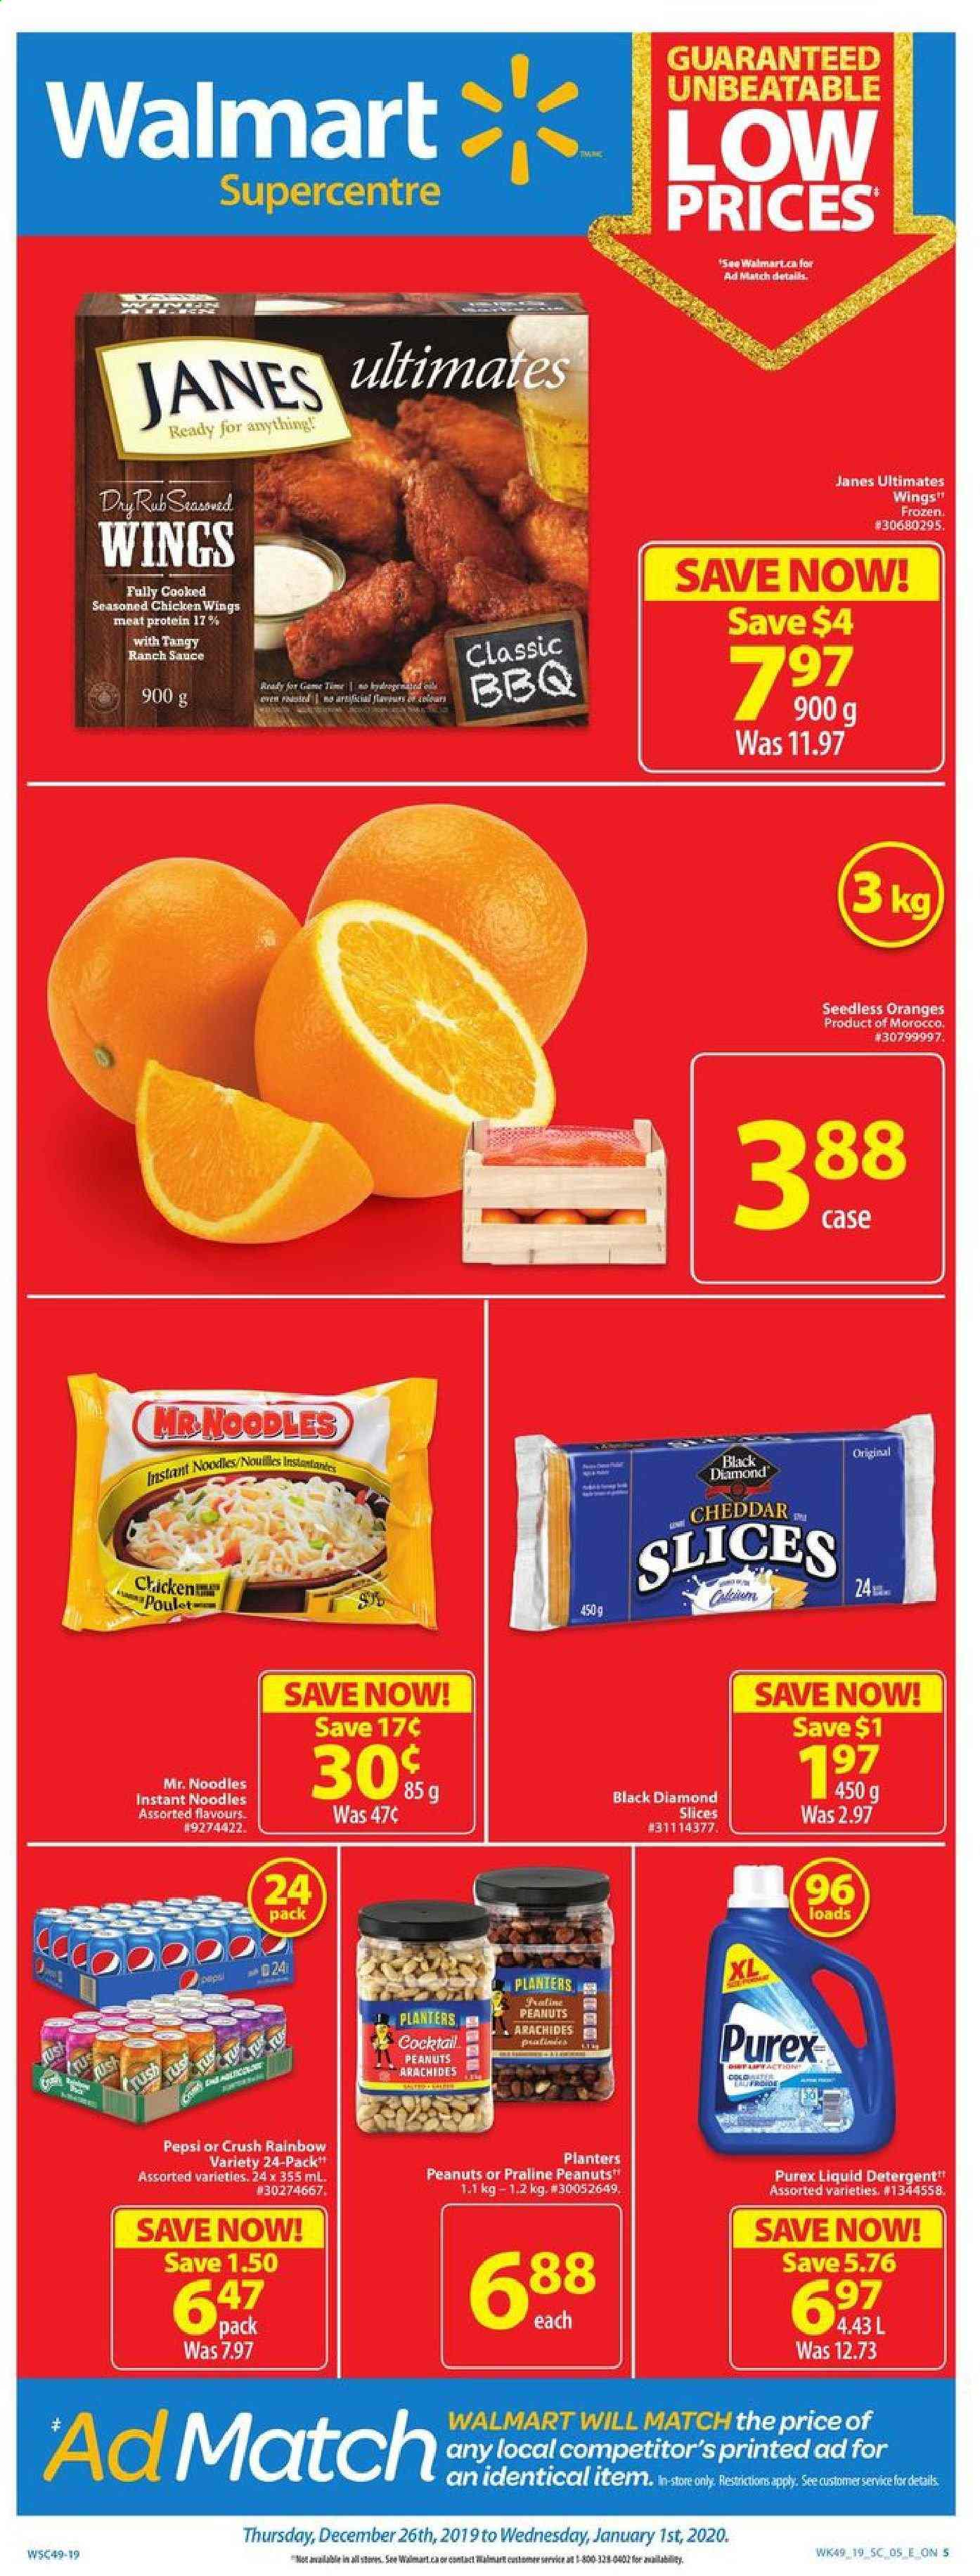 Walmart Flyer  - December 26, 2019 - January 01, 2020. Page 1.